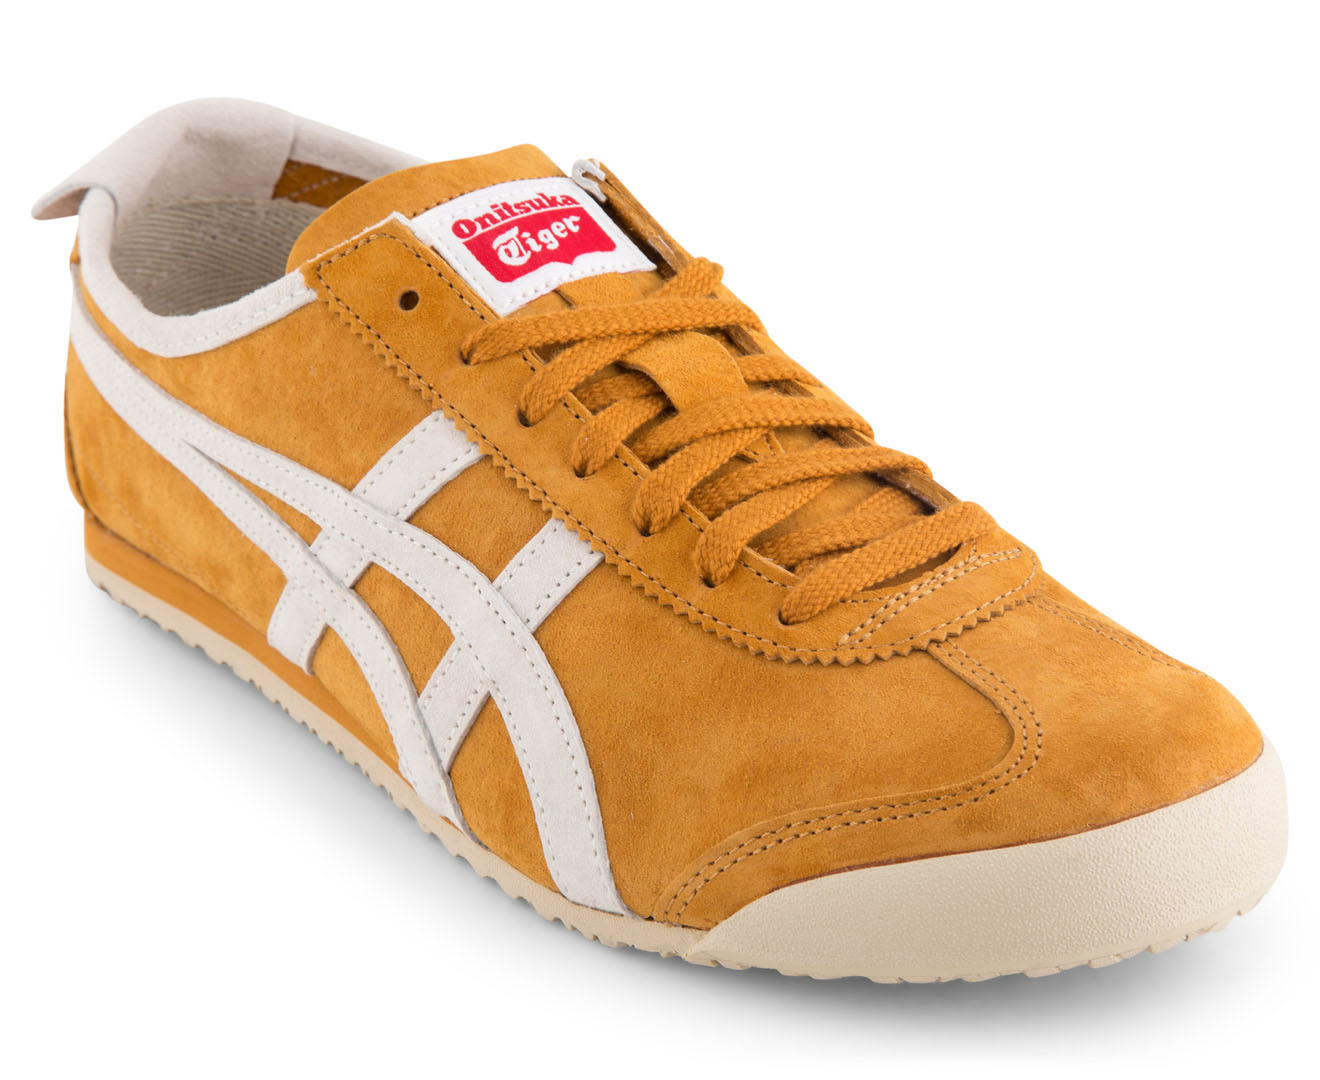 best loved 2bd98 05d58 Onitsuka Tiger Mexico 66 Shoe - Tan/Off-White